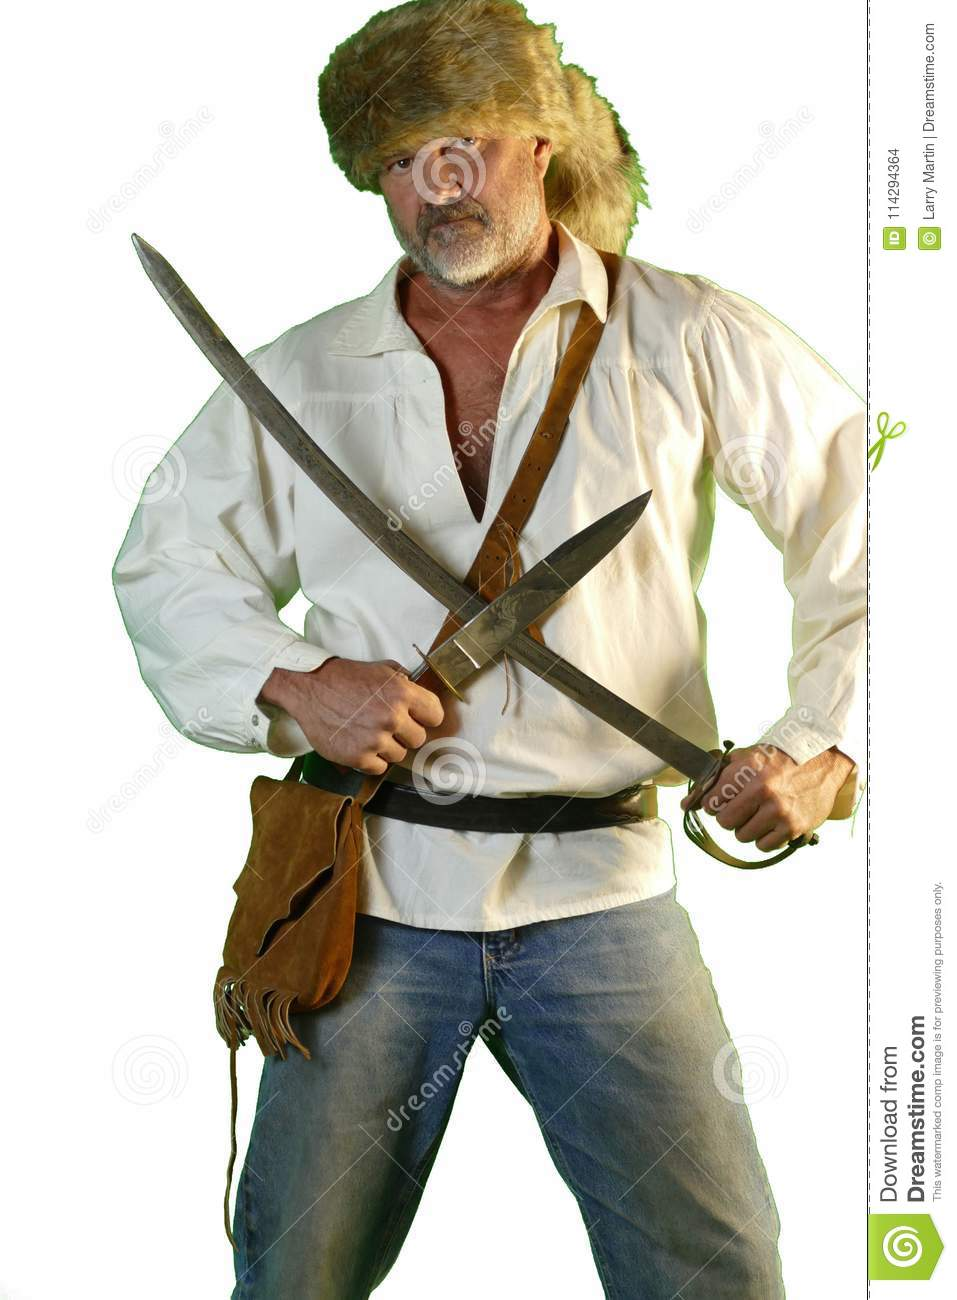 Mountain Man With Bowie Knife And Saber  Stock Photo - Image